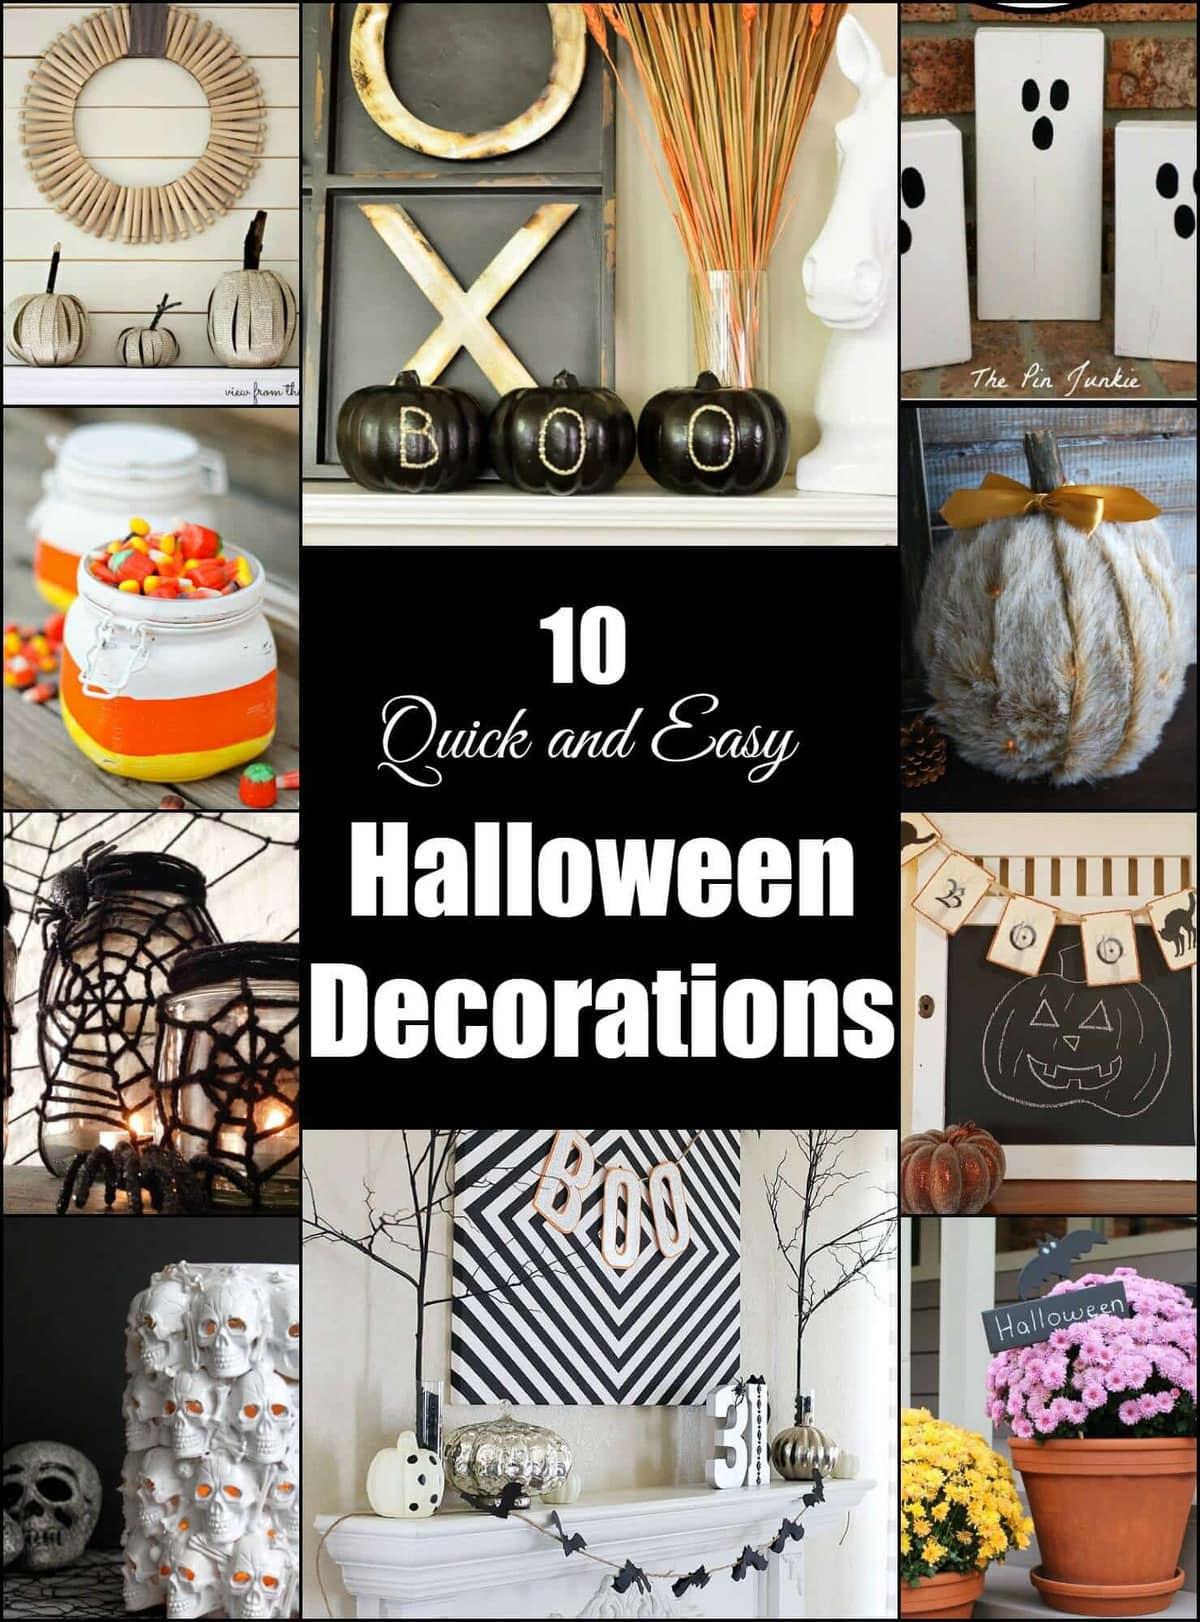 10 Quick and Easy Halloween Decorations  Page 2 of 2  Princess Pinky Girl